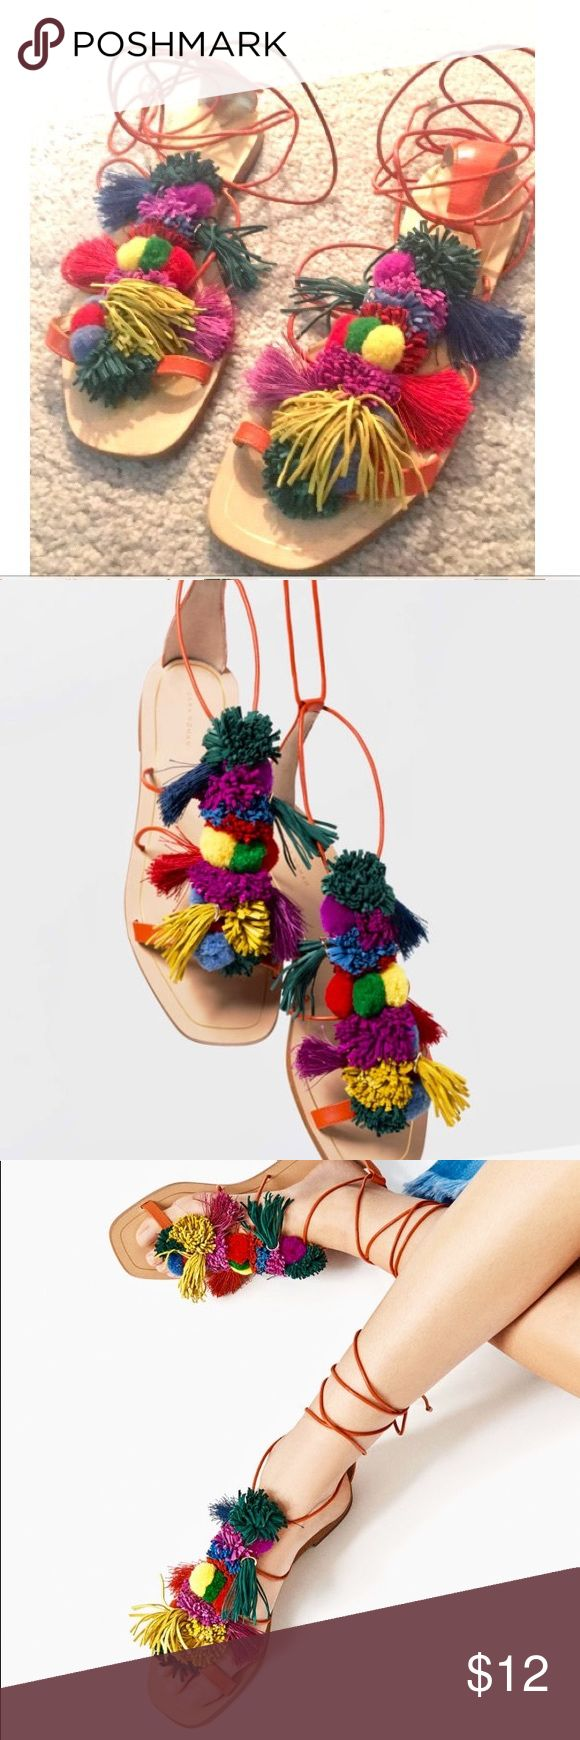 ZARA PomPom Gladiator Tie-Up LEATHER Sandals 40 10 SOLD OUT zara Pom Pom tie up Sandals - so chic and cute, all-day shoe.  Worn on vacation 3 days!! Bought in Milan. Very trendy Zara lace up sandals with pom poms. EXCELLENT condition, ready for you!   From a pet free and smoke free home. Any questions, please email me. Zara Shoes Sandals